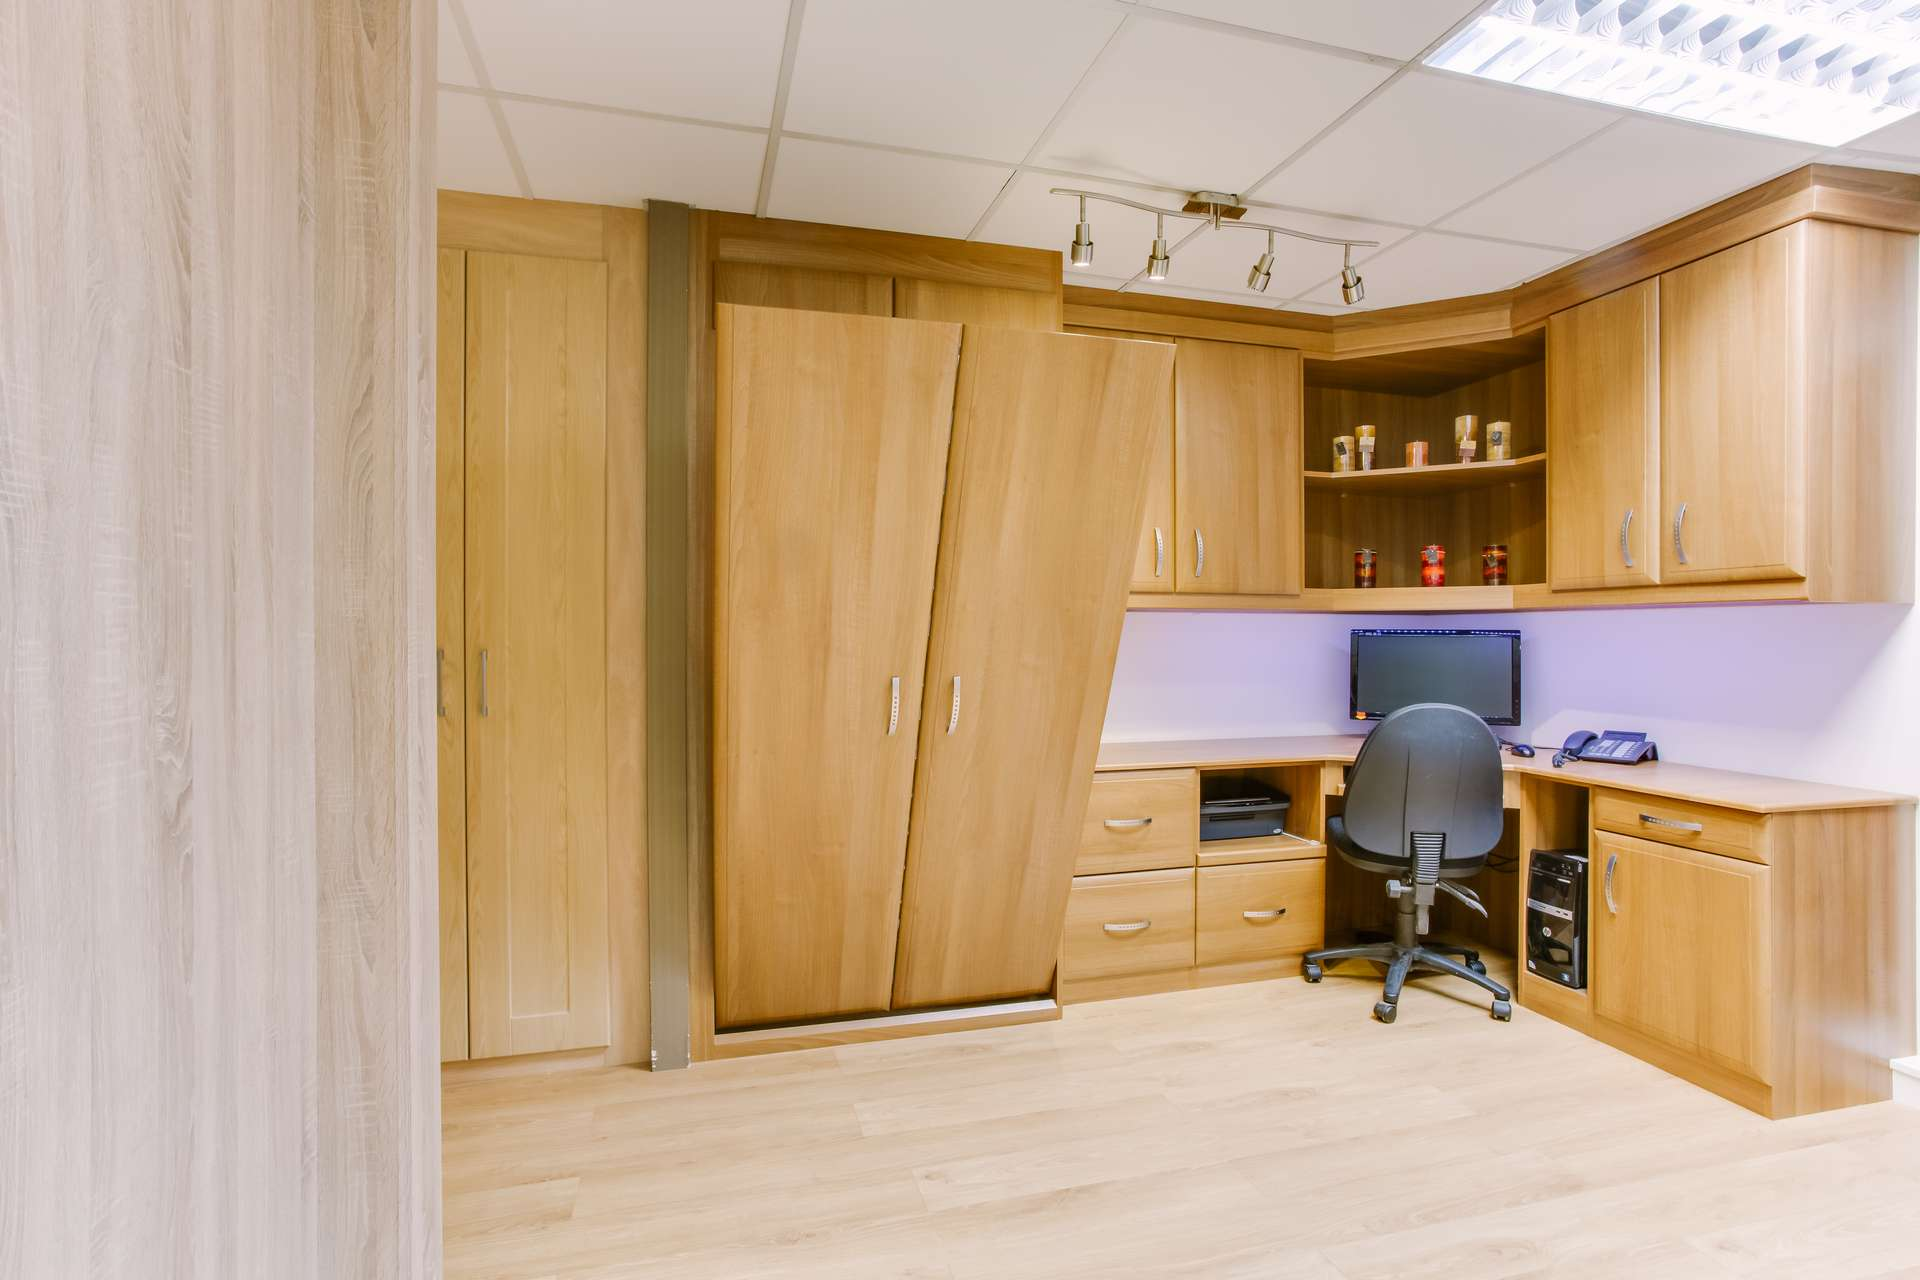 Combine a foldaway bed with a home office to make best use of space